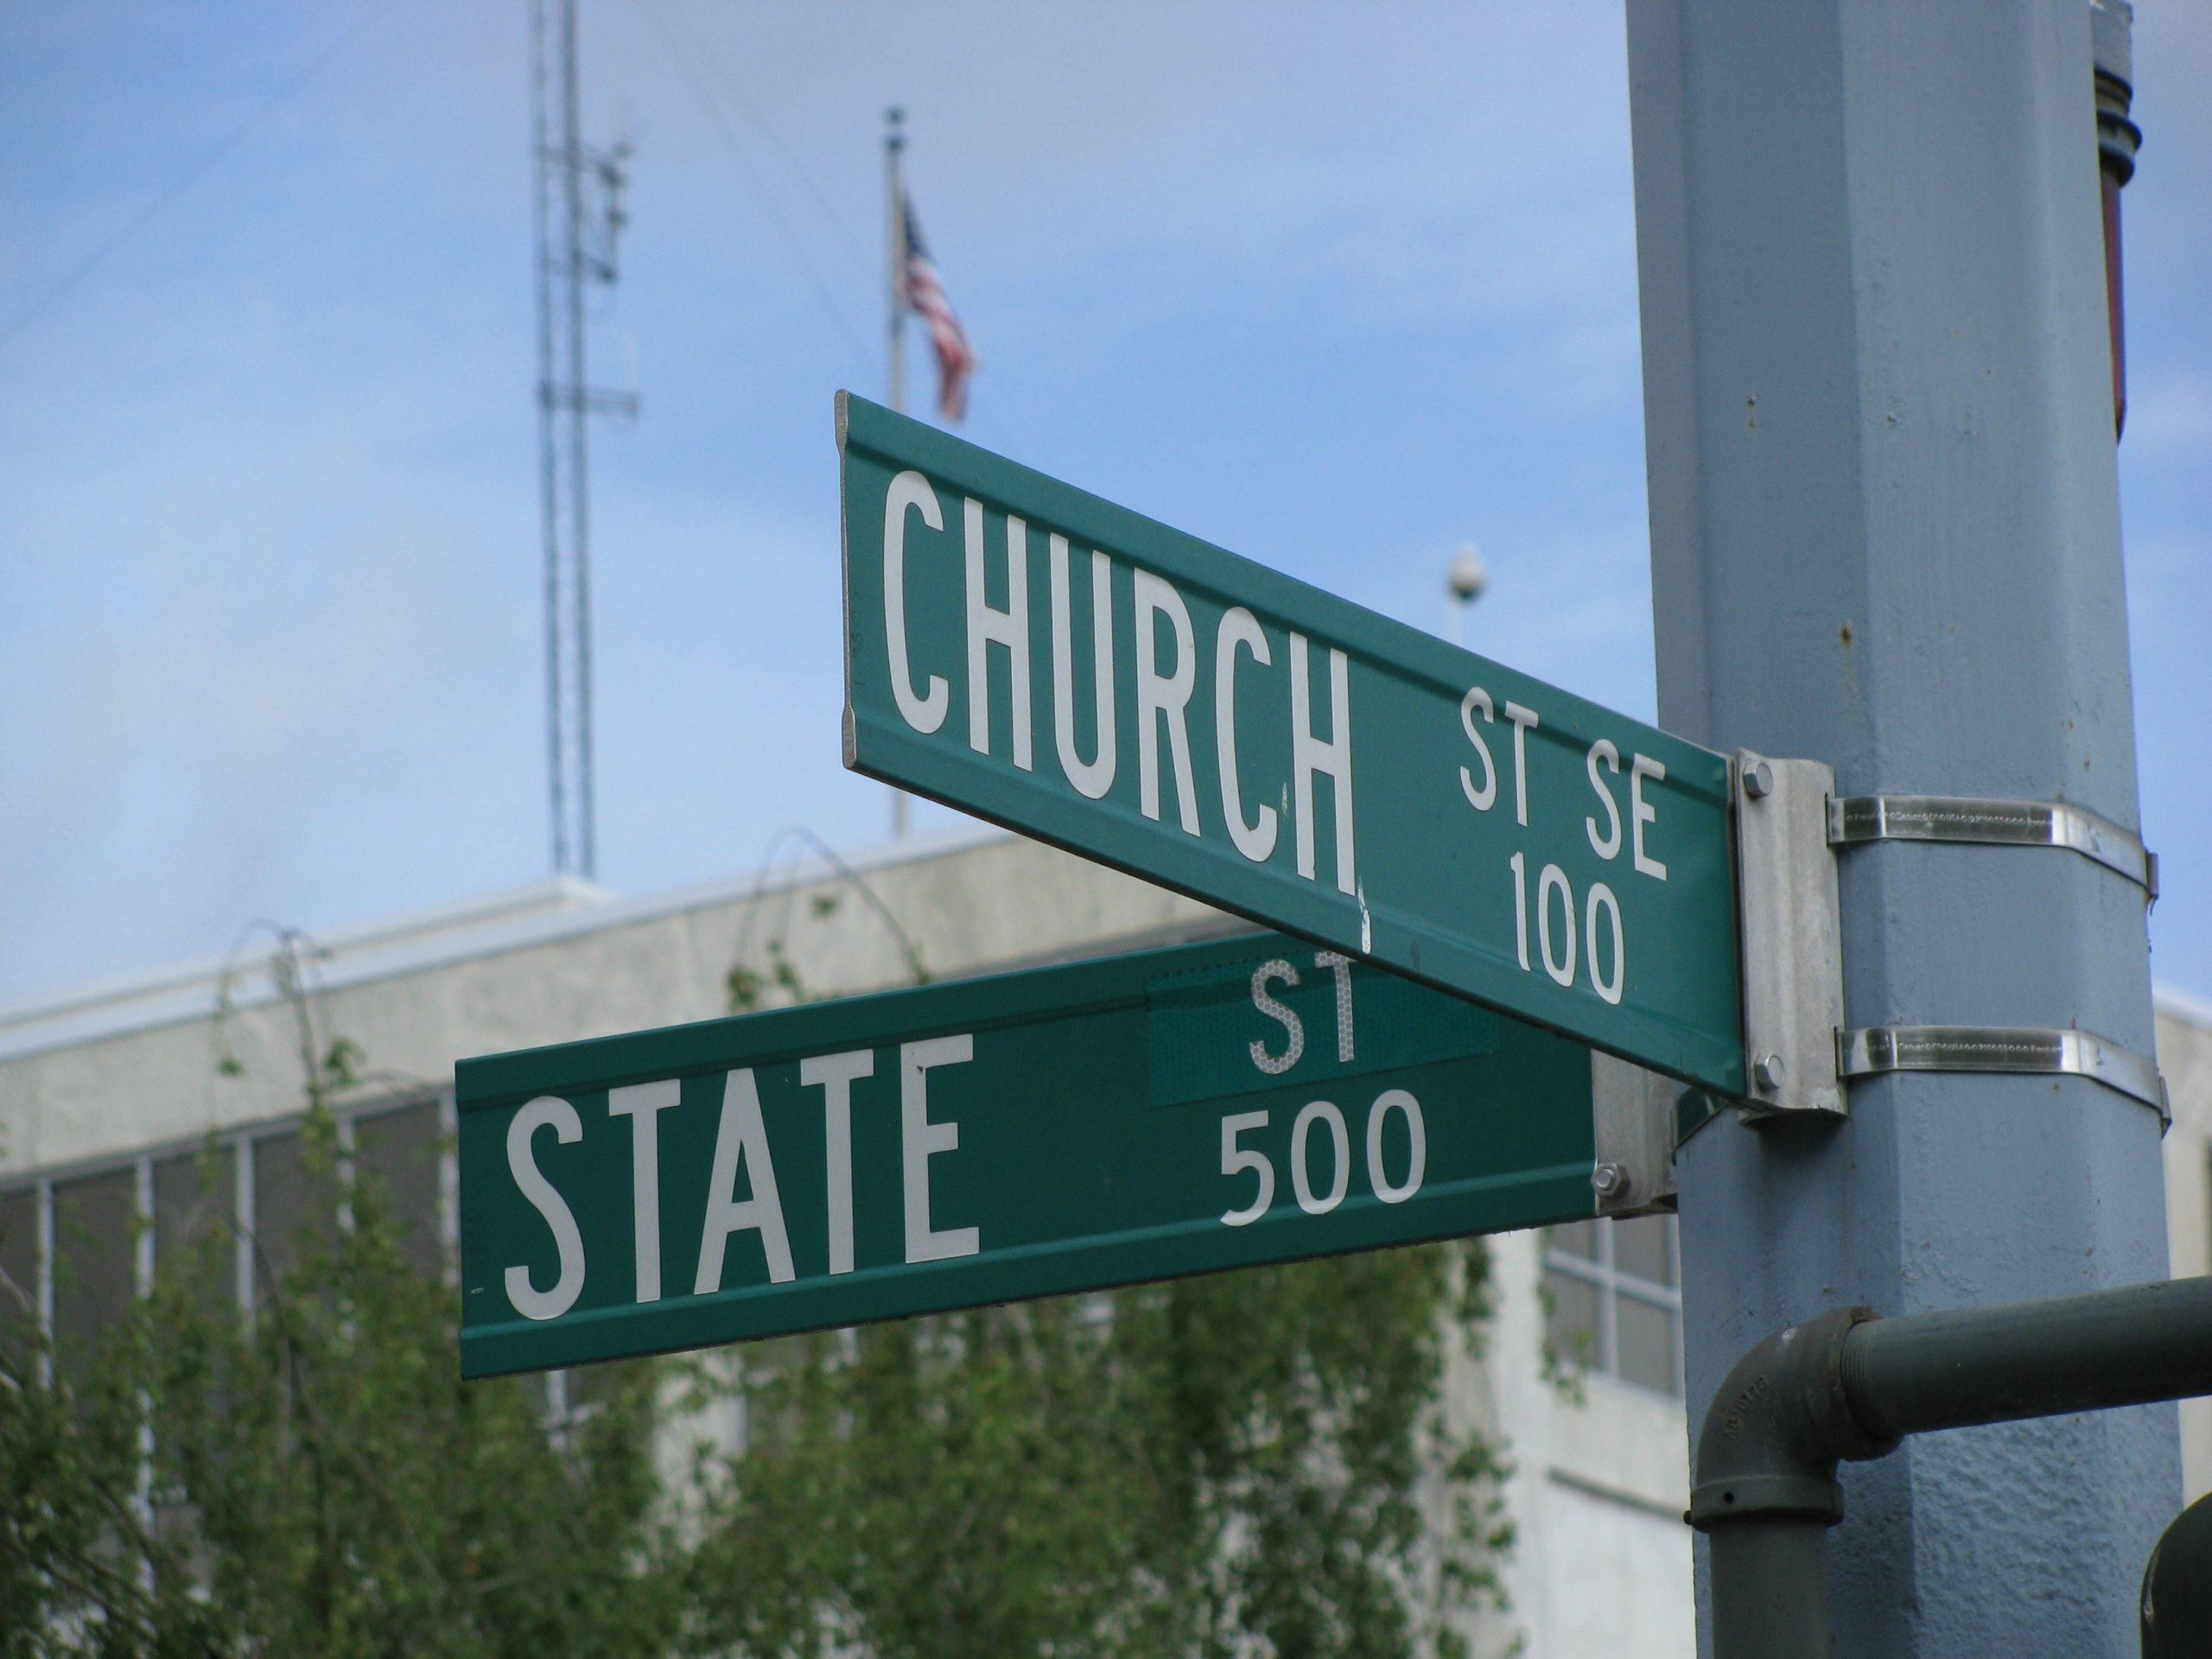 Intersection of Church and State St. – a symbolic separation of paths. Photo credits to: Rachel Patterson (CC BY-NC-SA 2.0) [129]